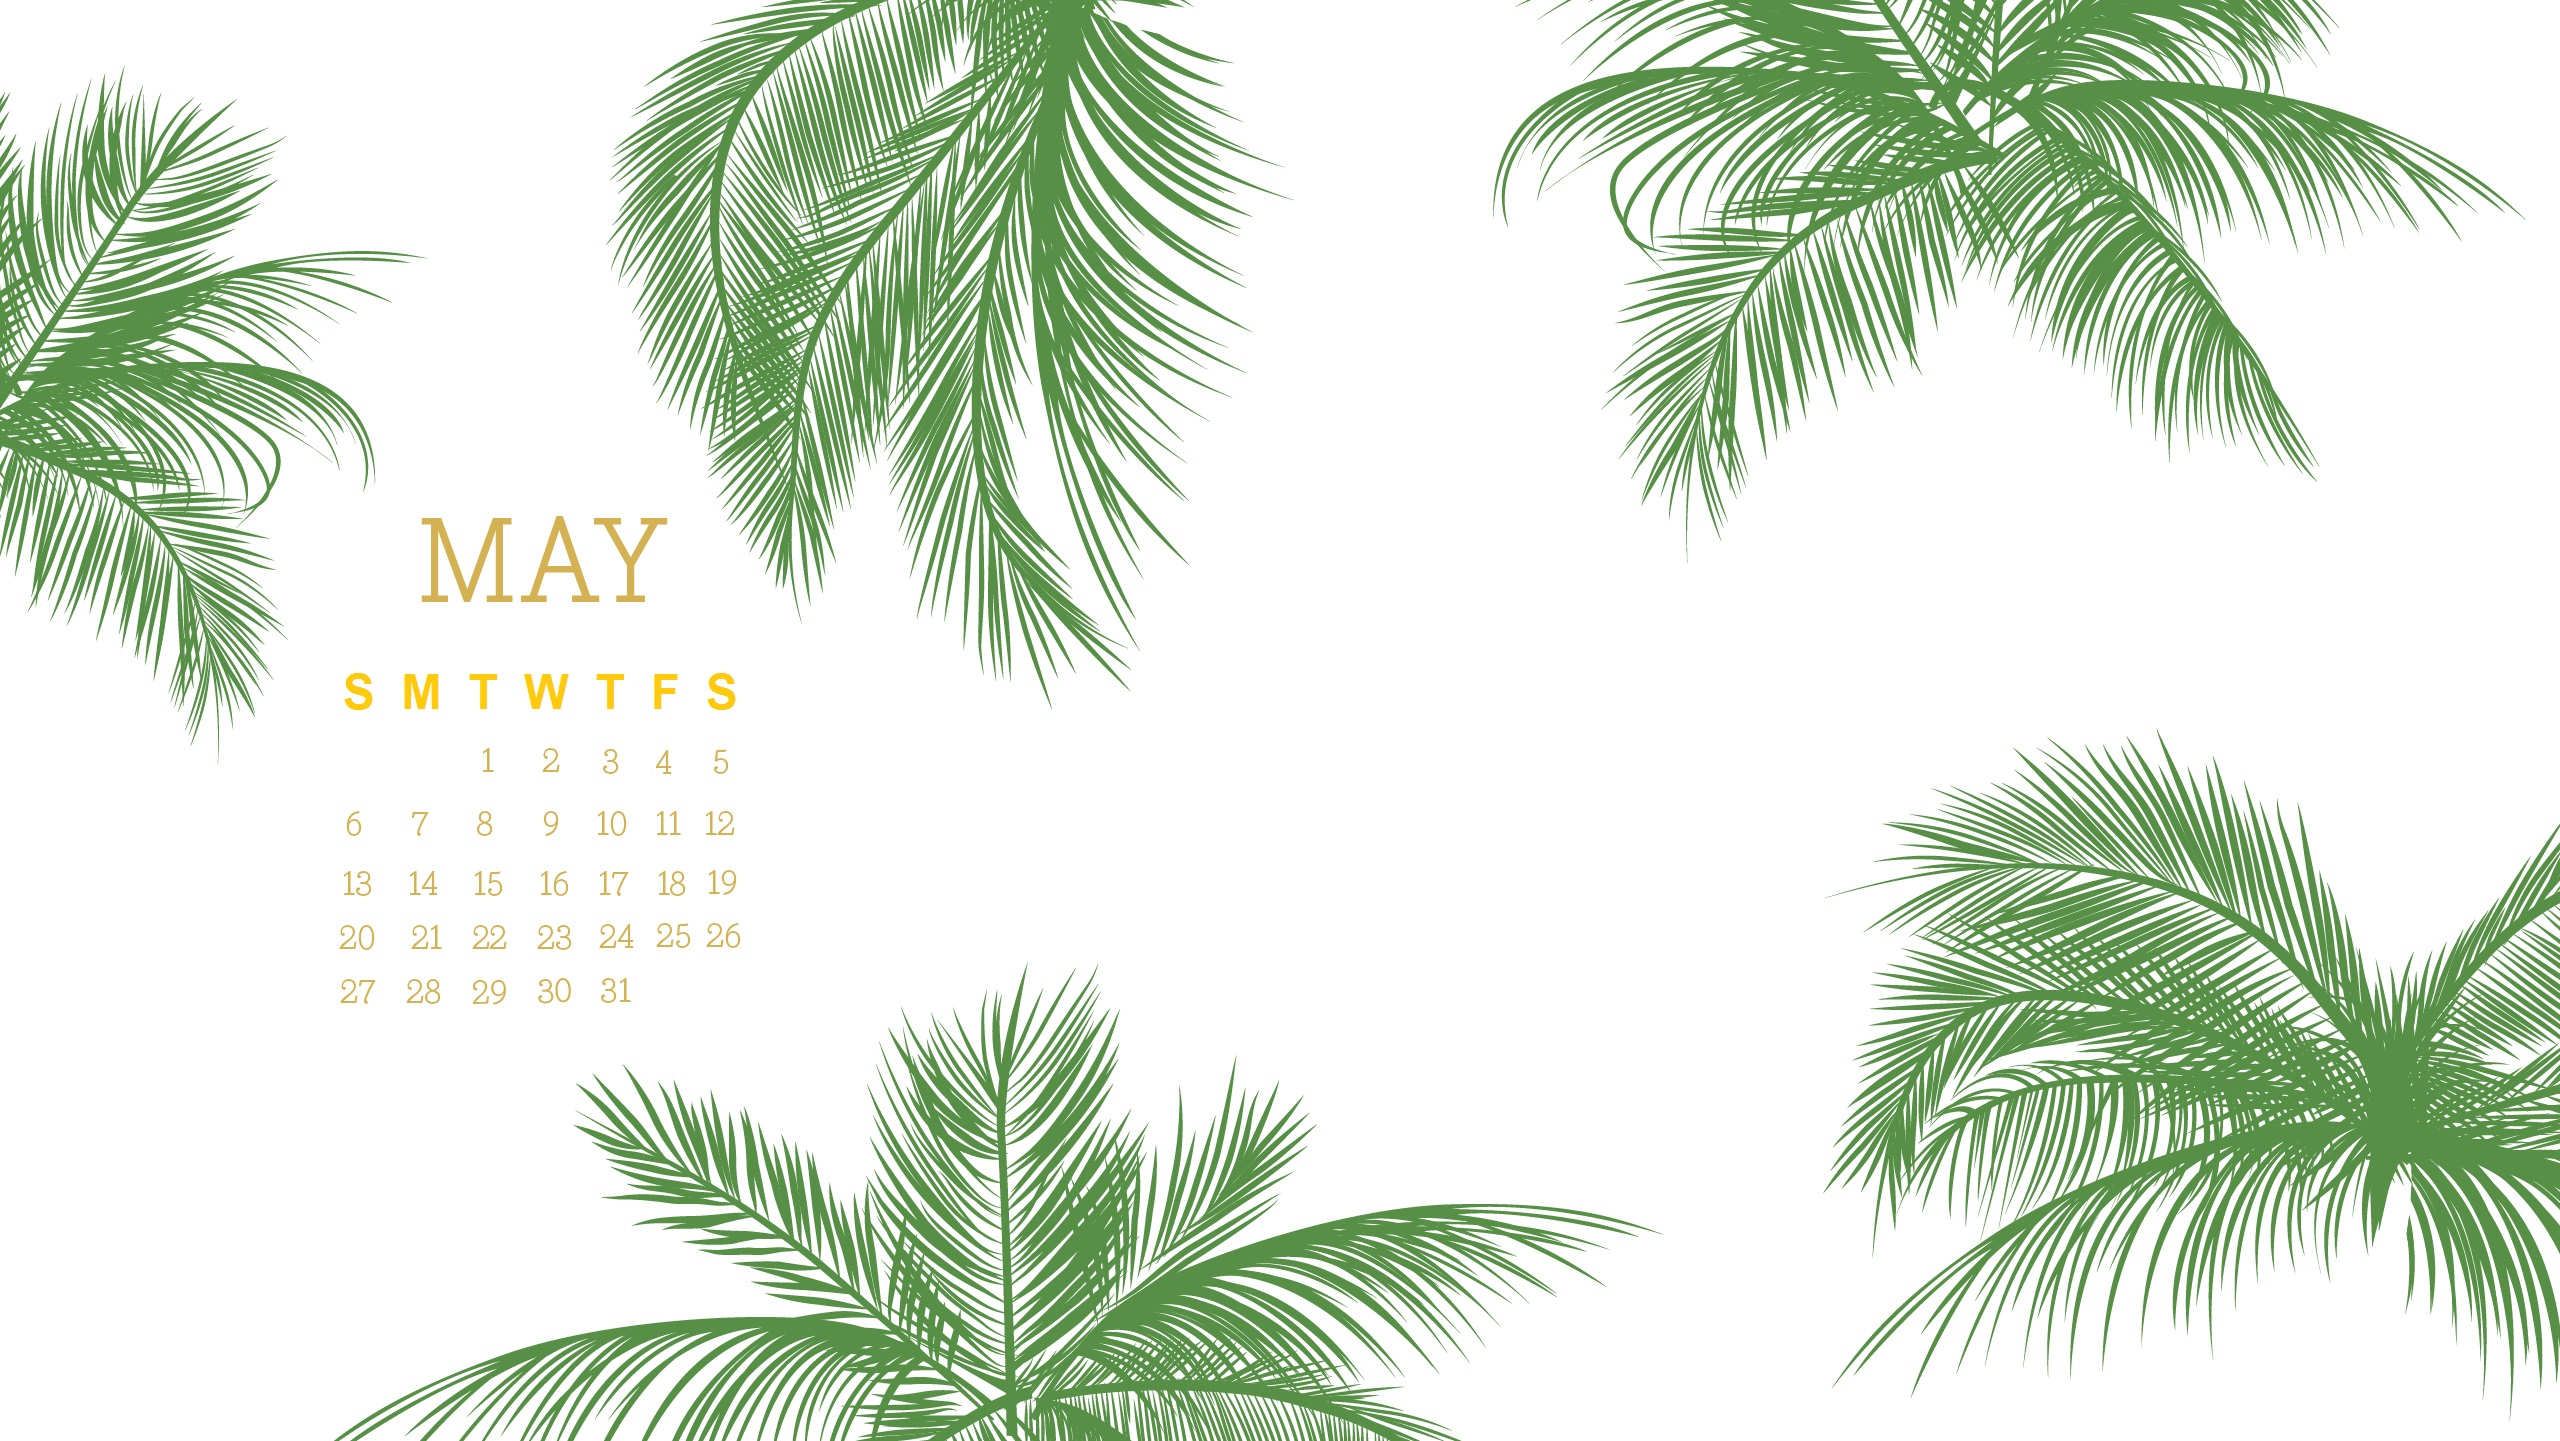 May 2018 Marble Desktop Calendar